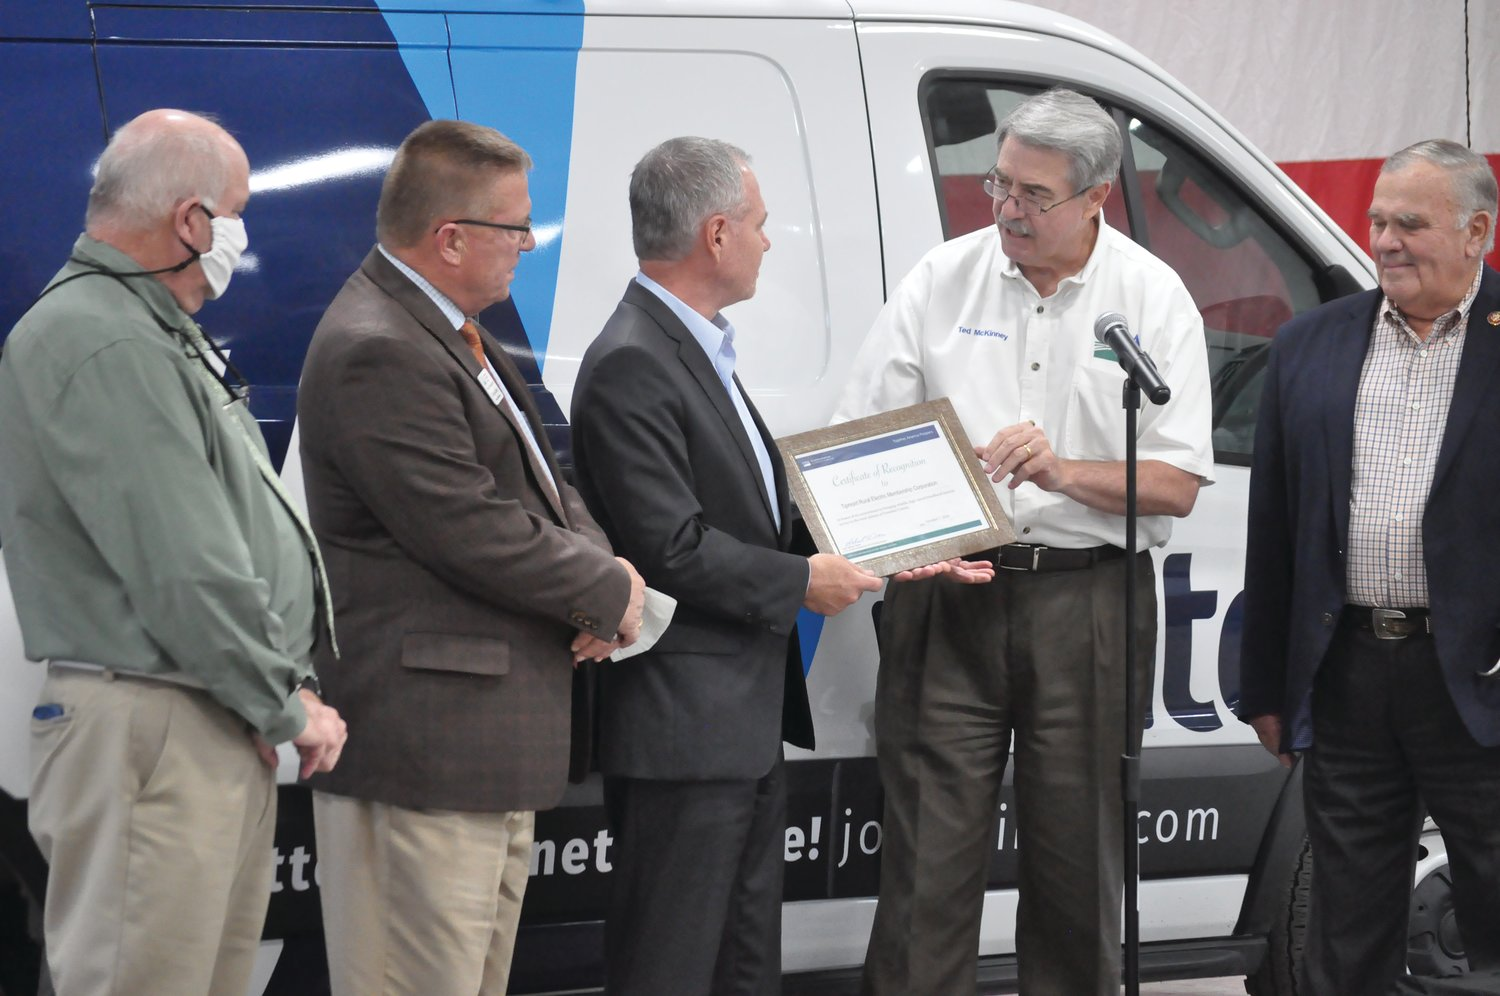 Ted McKinney, undersecretary of agriculture for trade and foreign agricultural affairs, presents a certificate of recognition to Tipmont REMC CEO Ron Holcomb as dignitaries look on Wednesday near Kingman. Tipmont/Wintek received more than $1 million in federal matching funds to expand high-speed internet to additional homes, farms and businesses in Fountain County.